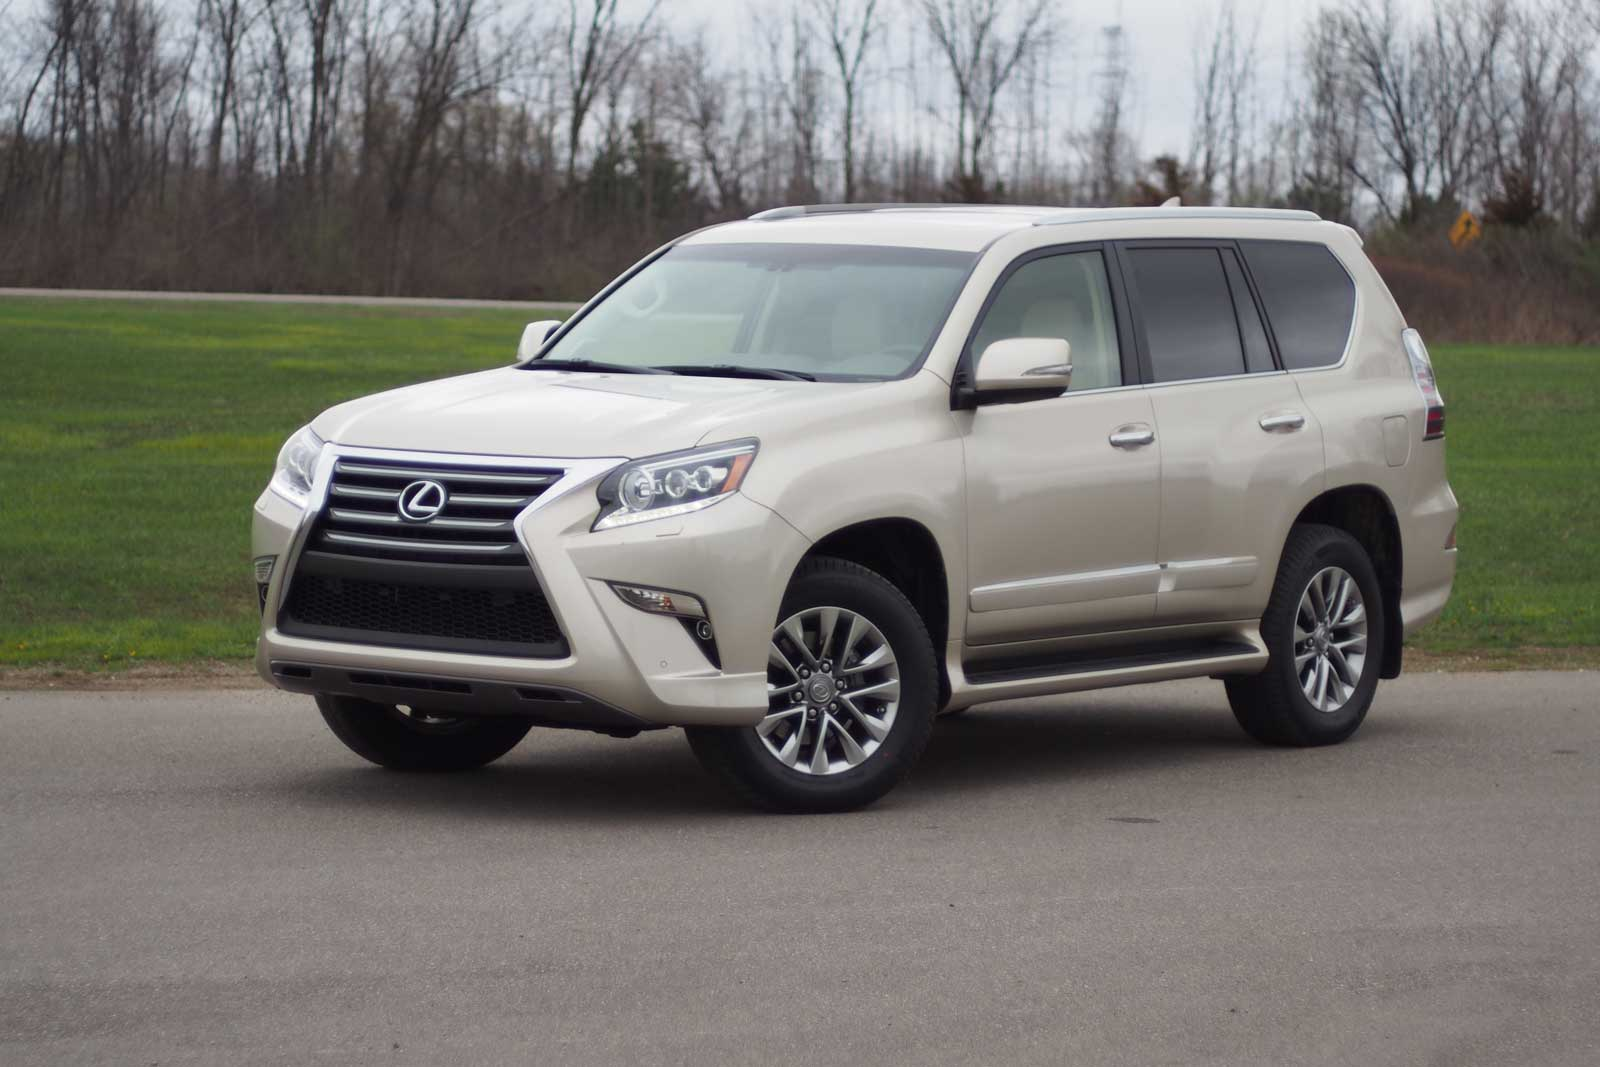 2016 lexus gx 460 review curbed with craig cole. Black Bedroom Furniture Sets. Home Design Ideas